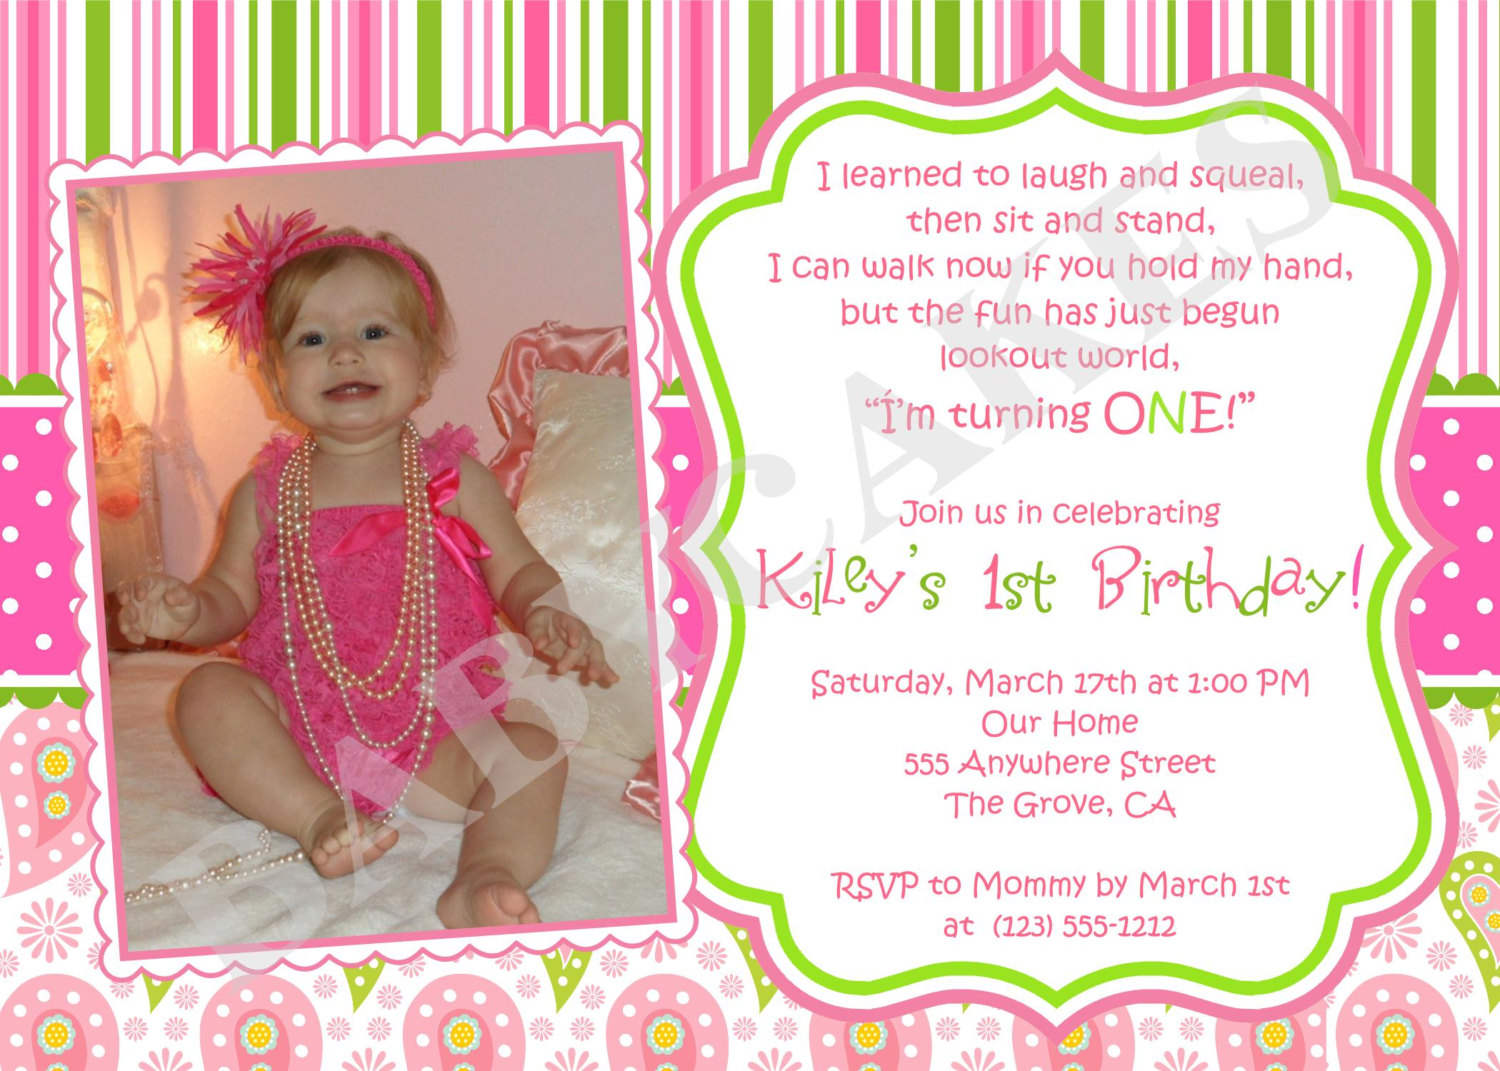 first birthday invitation letter ; ideas-of-see-all-this-1st-birthday-party-invitation-wording-beautiful-how-to-write-invitation-letter-for-1st-birthday-party-of-how-to-write-invitation-letter-for-1st-birthday-party